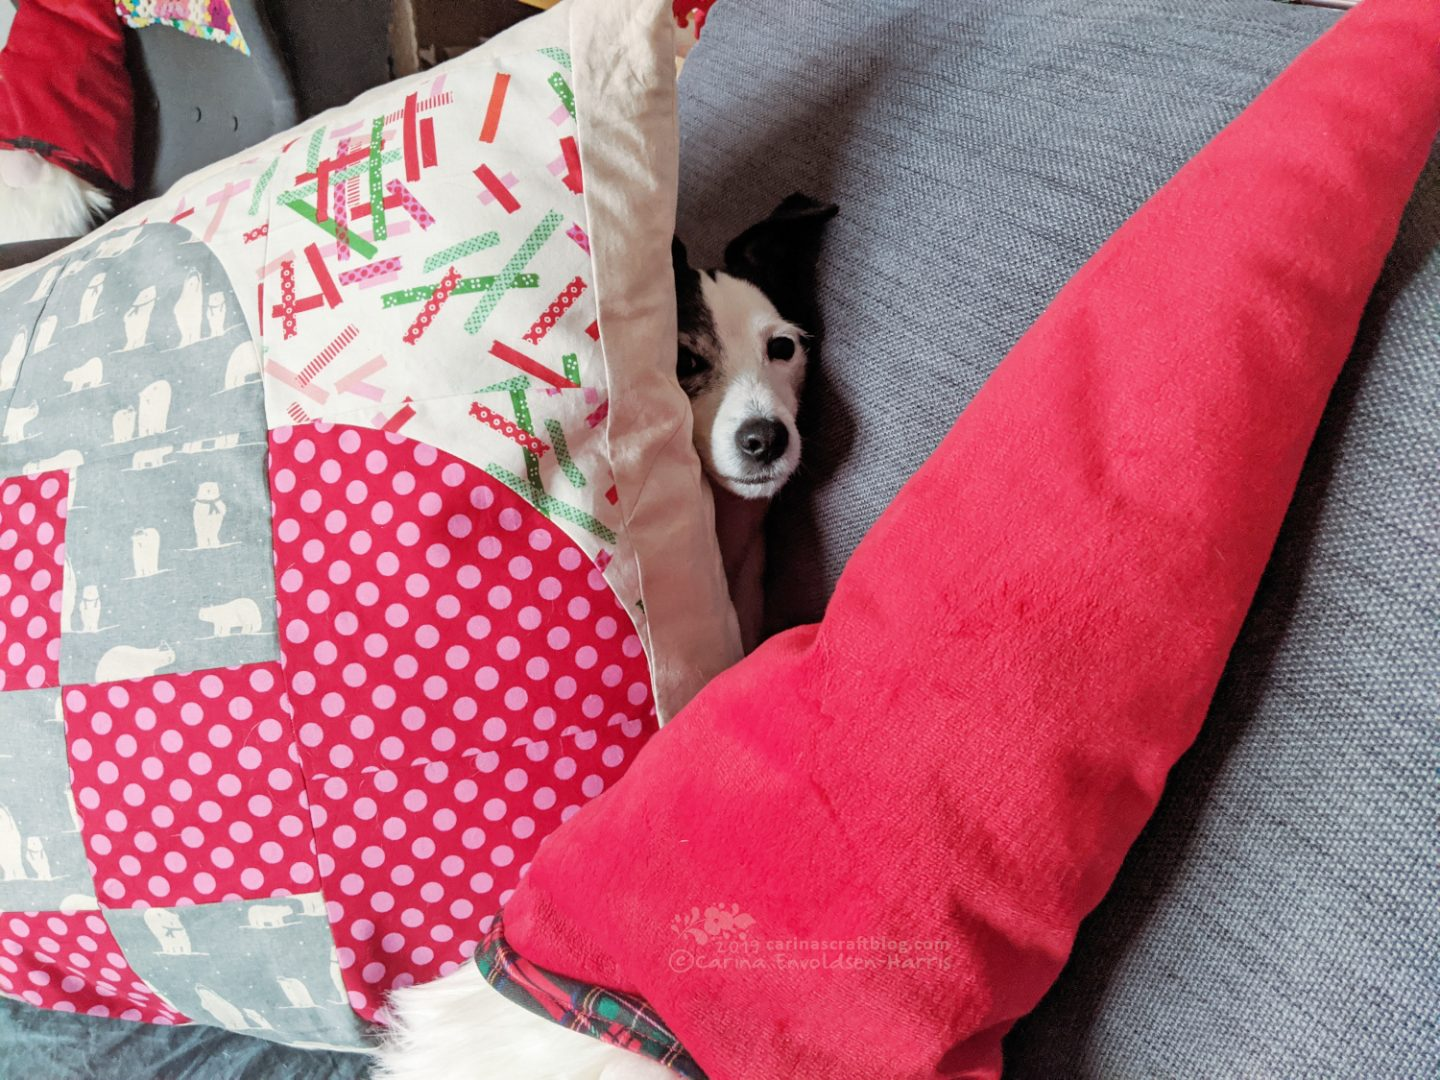 Dog face poking out from behind a big cushion.